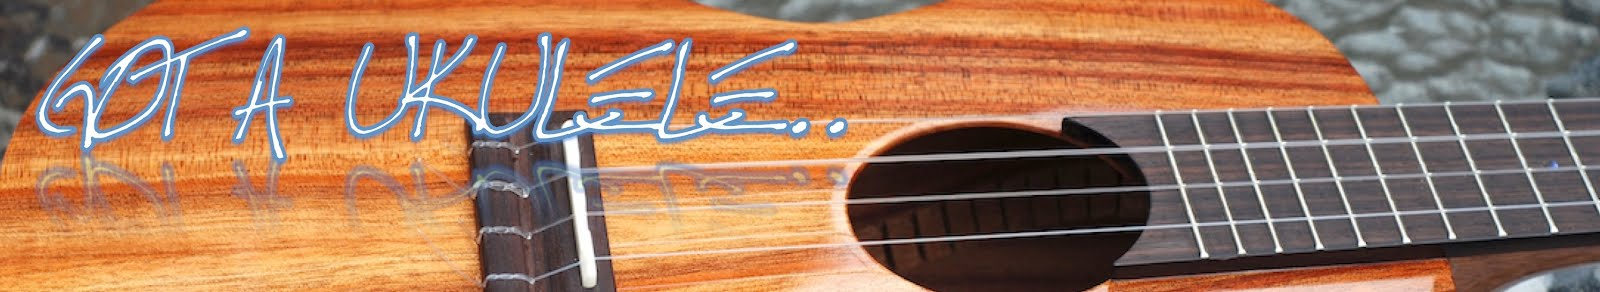 Got A Ukulele, Blog